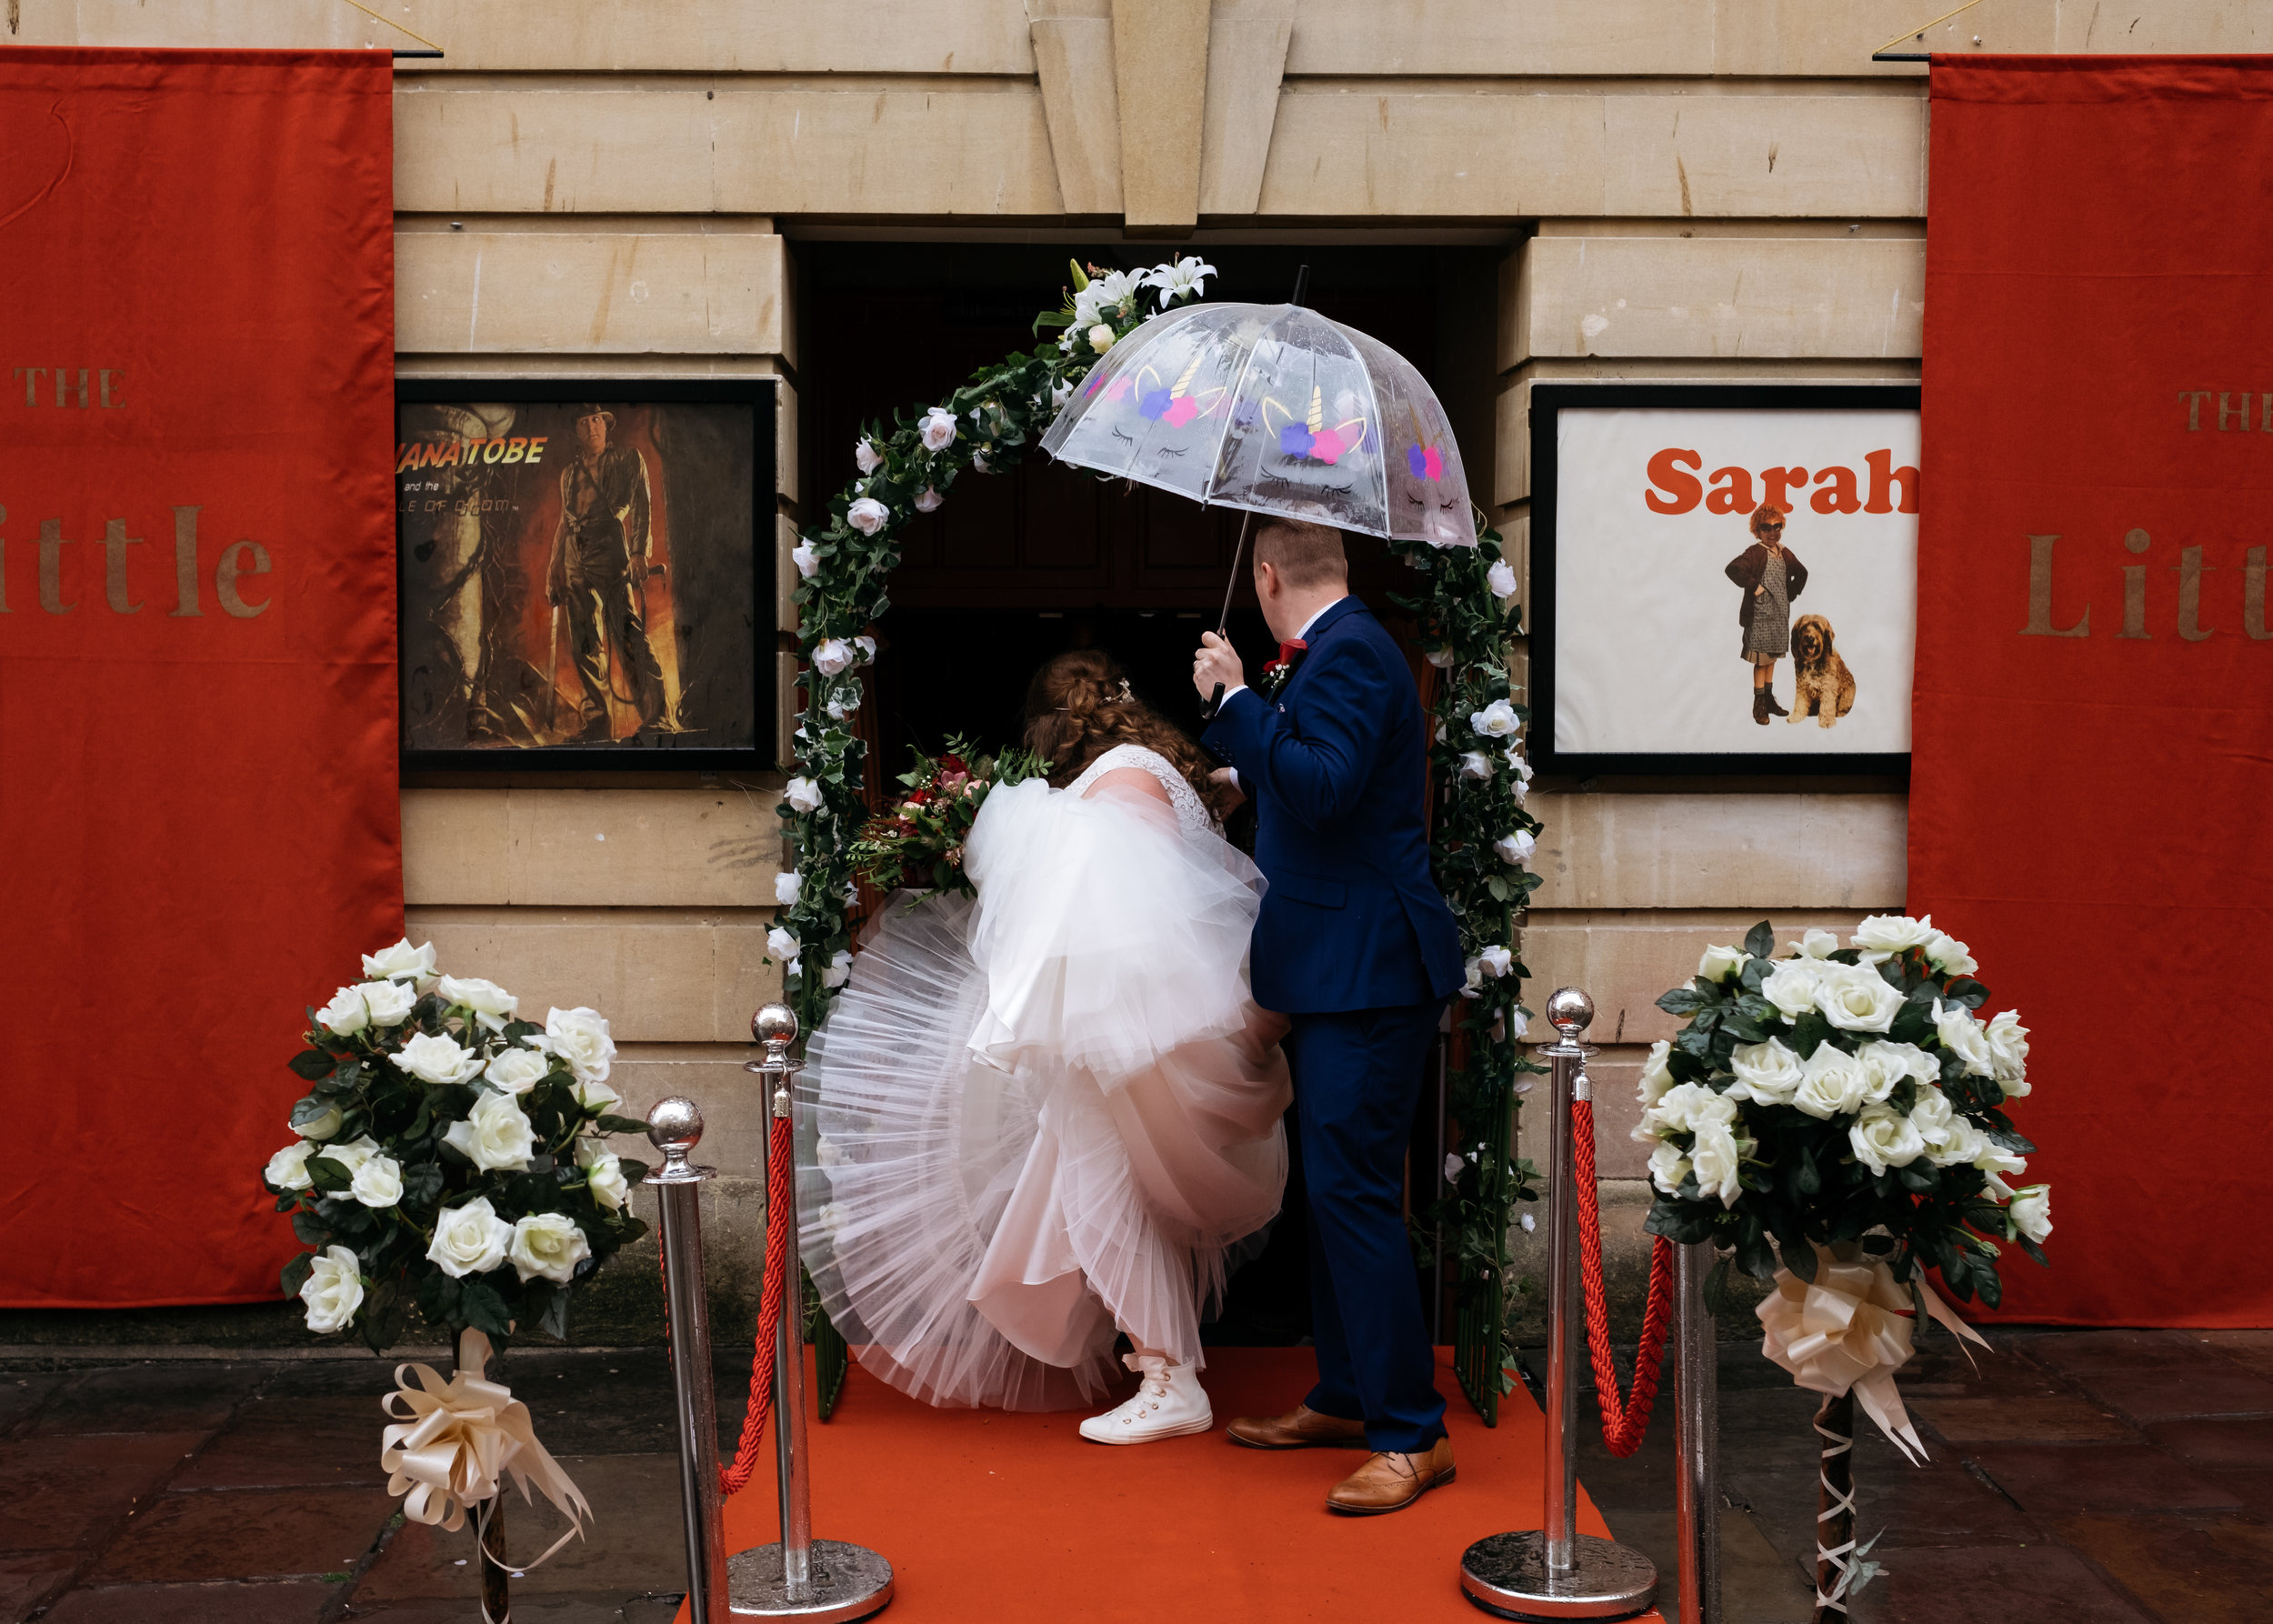 Bride and Groom outside the Little Theatre in Bath